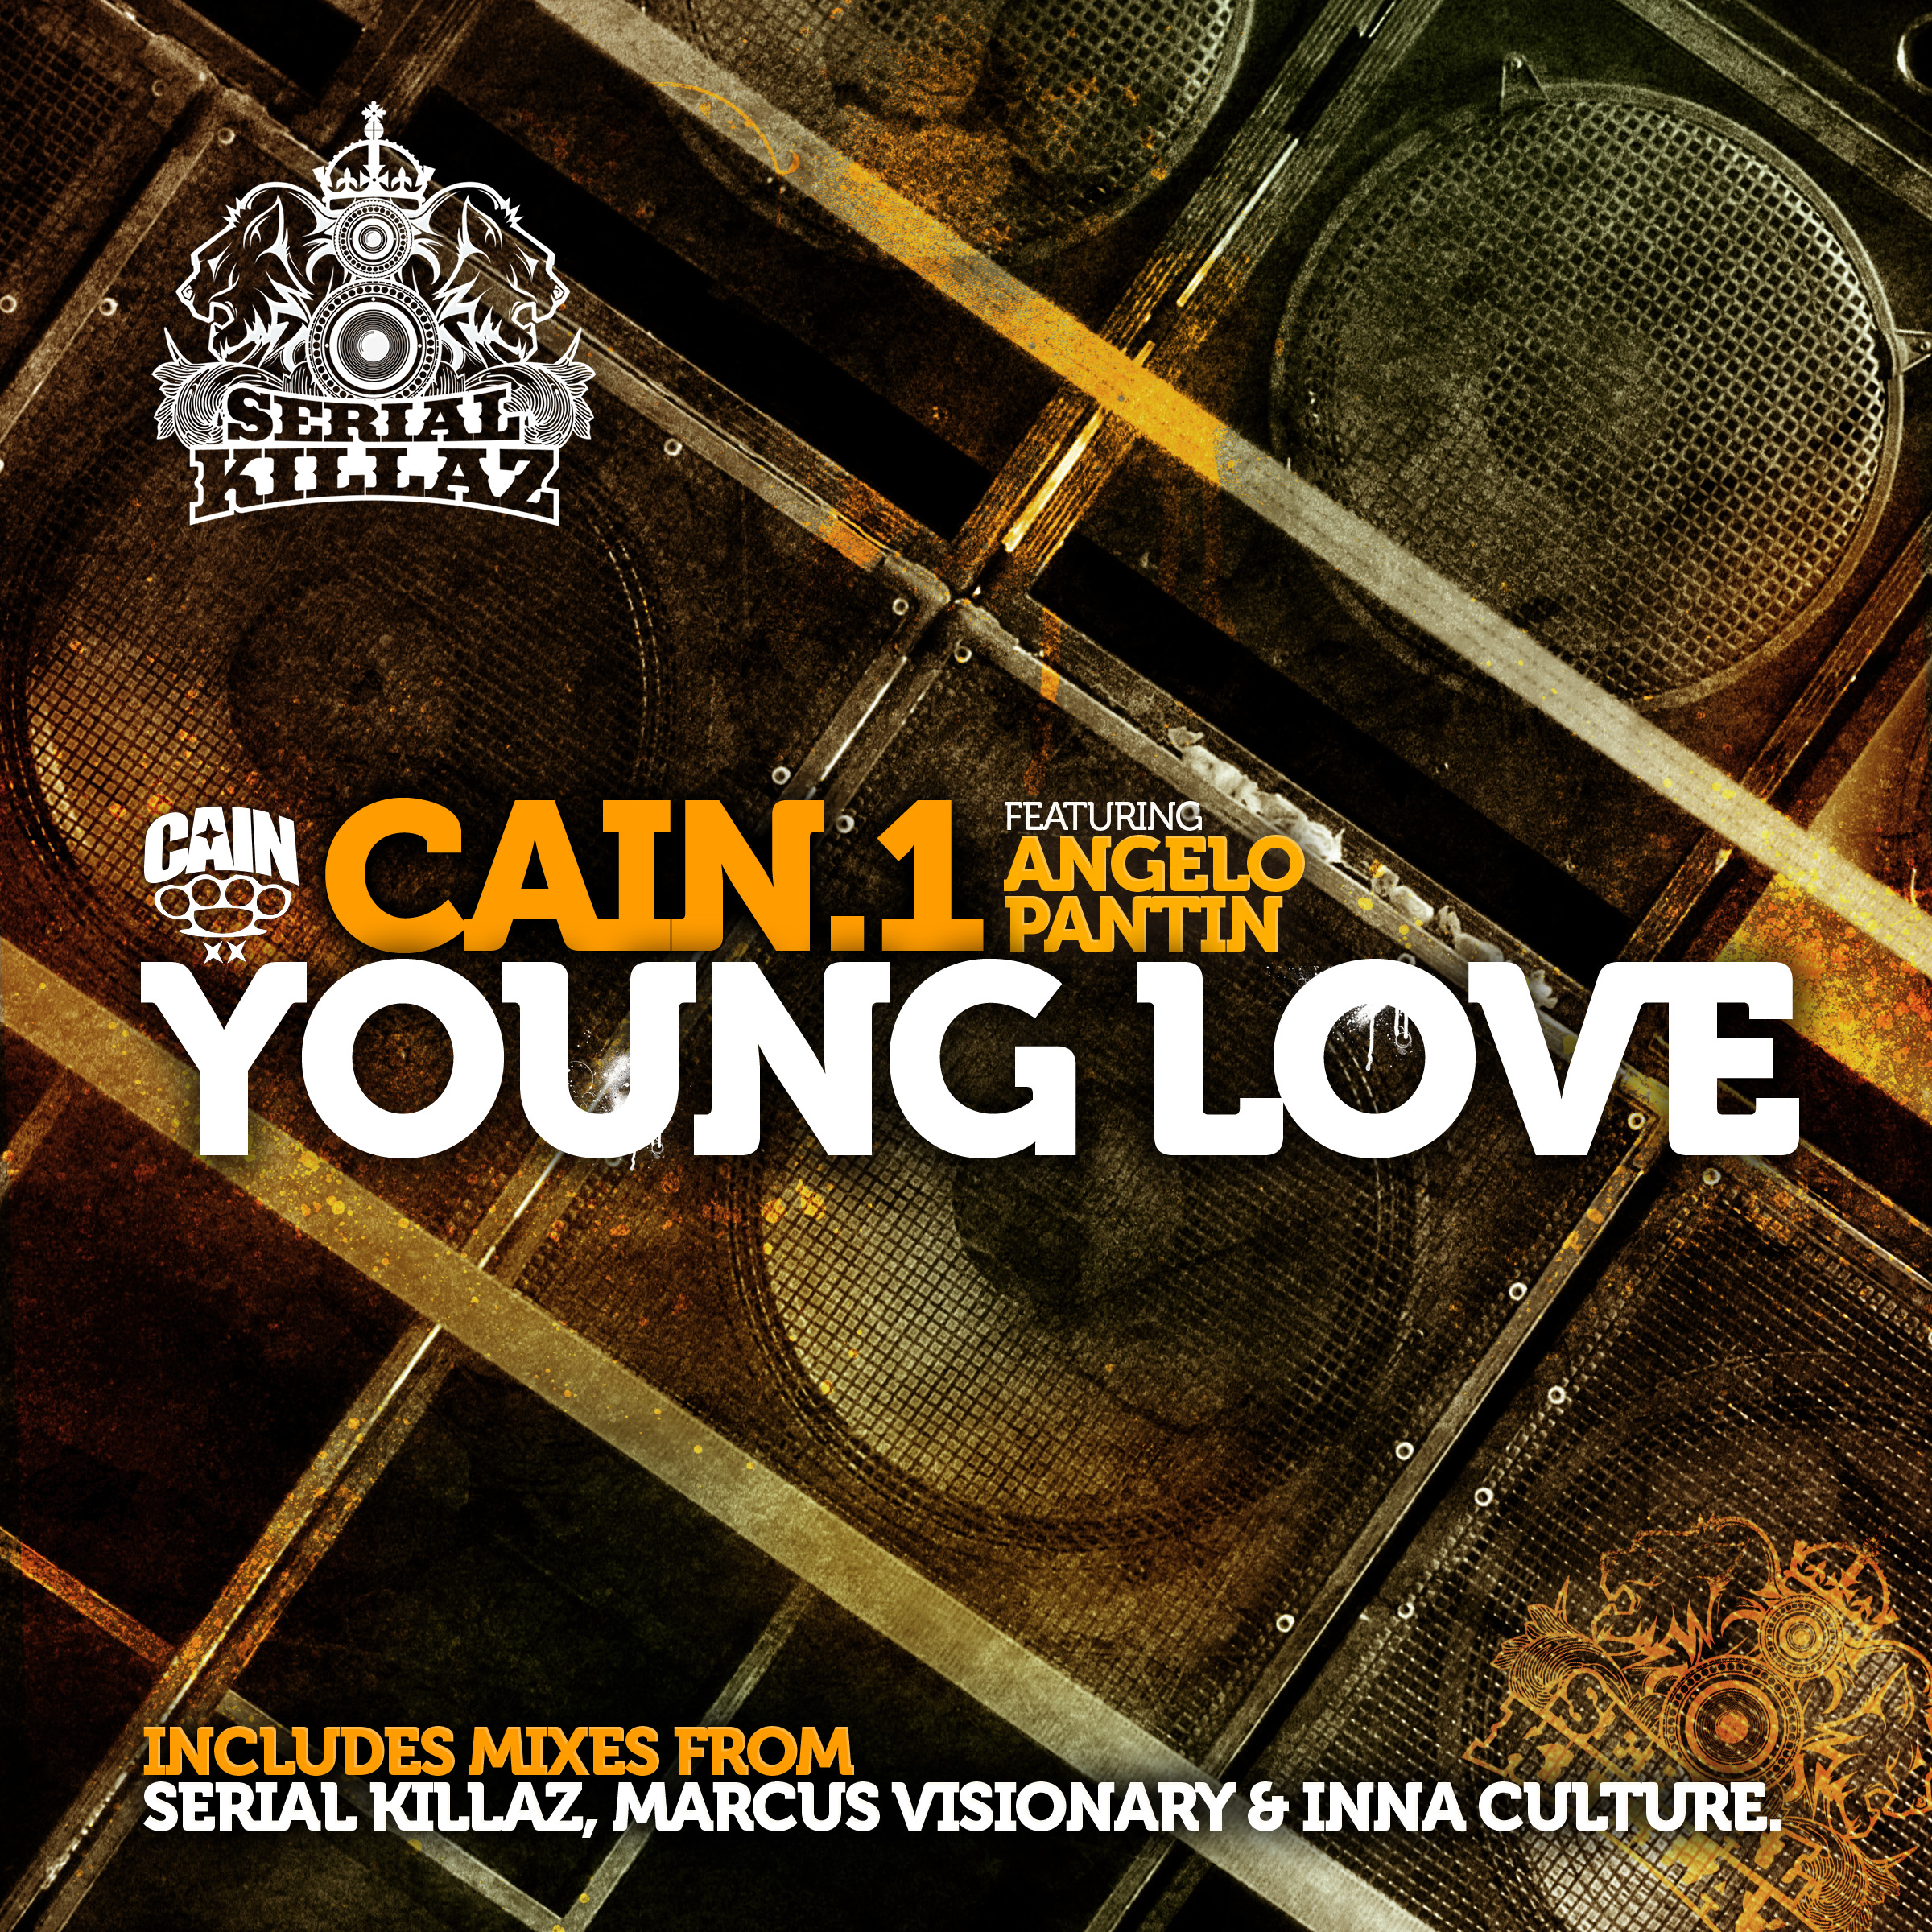 Cain.1 Featuring Angelo Pantin - Young Love EP